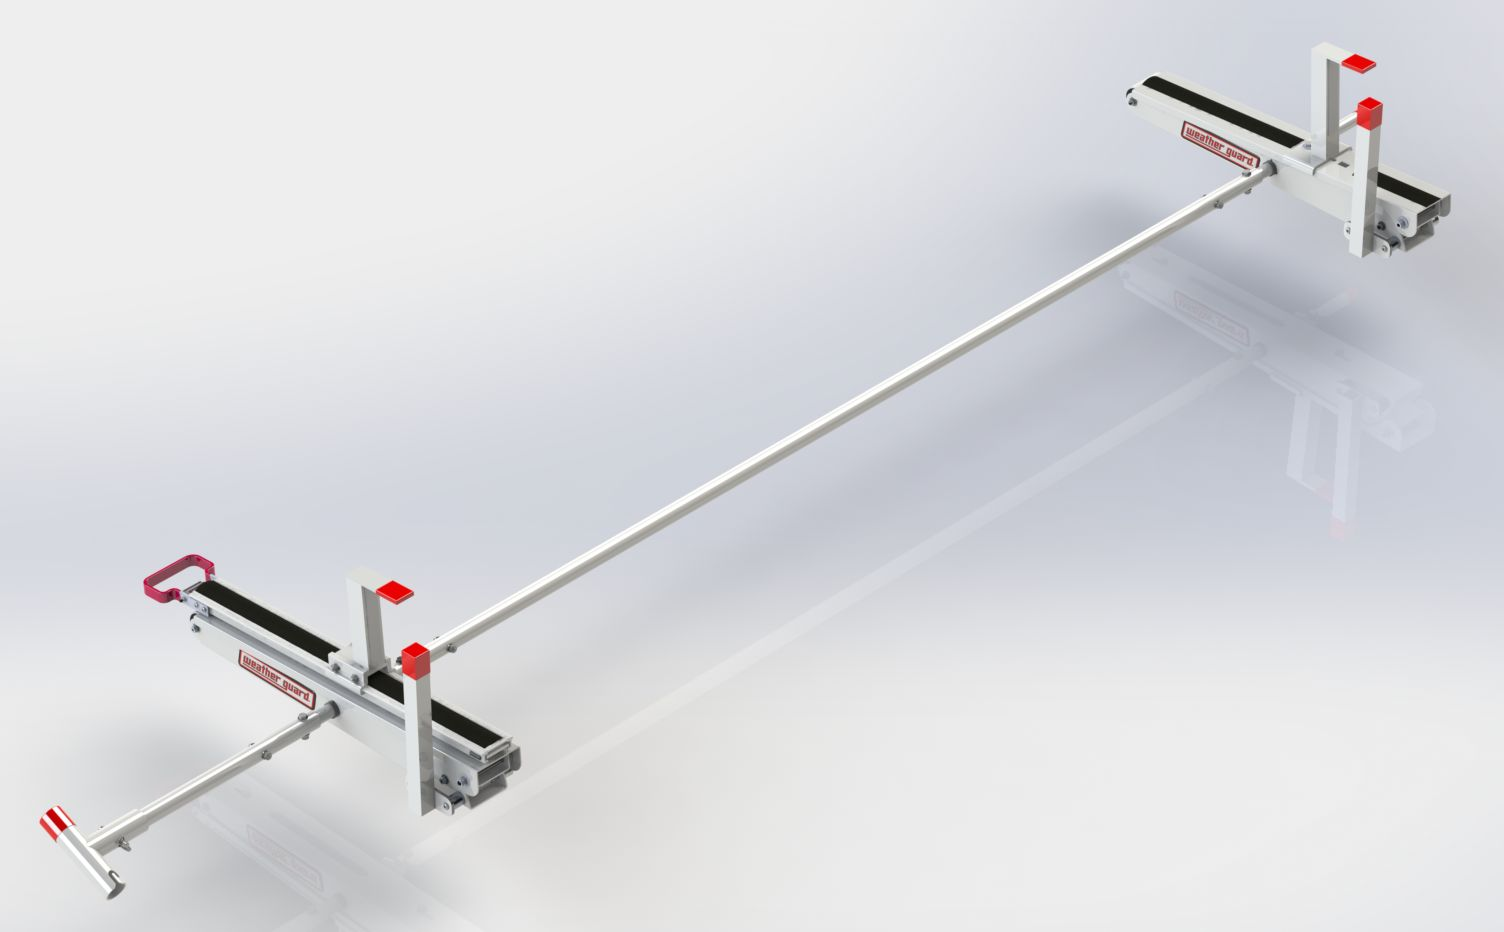 2295 3 01 weather guard werner ladder rack drop down mechanism for use with ez glide 2 drop down ladder rack to load ladders on the driver side of v